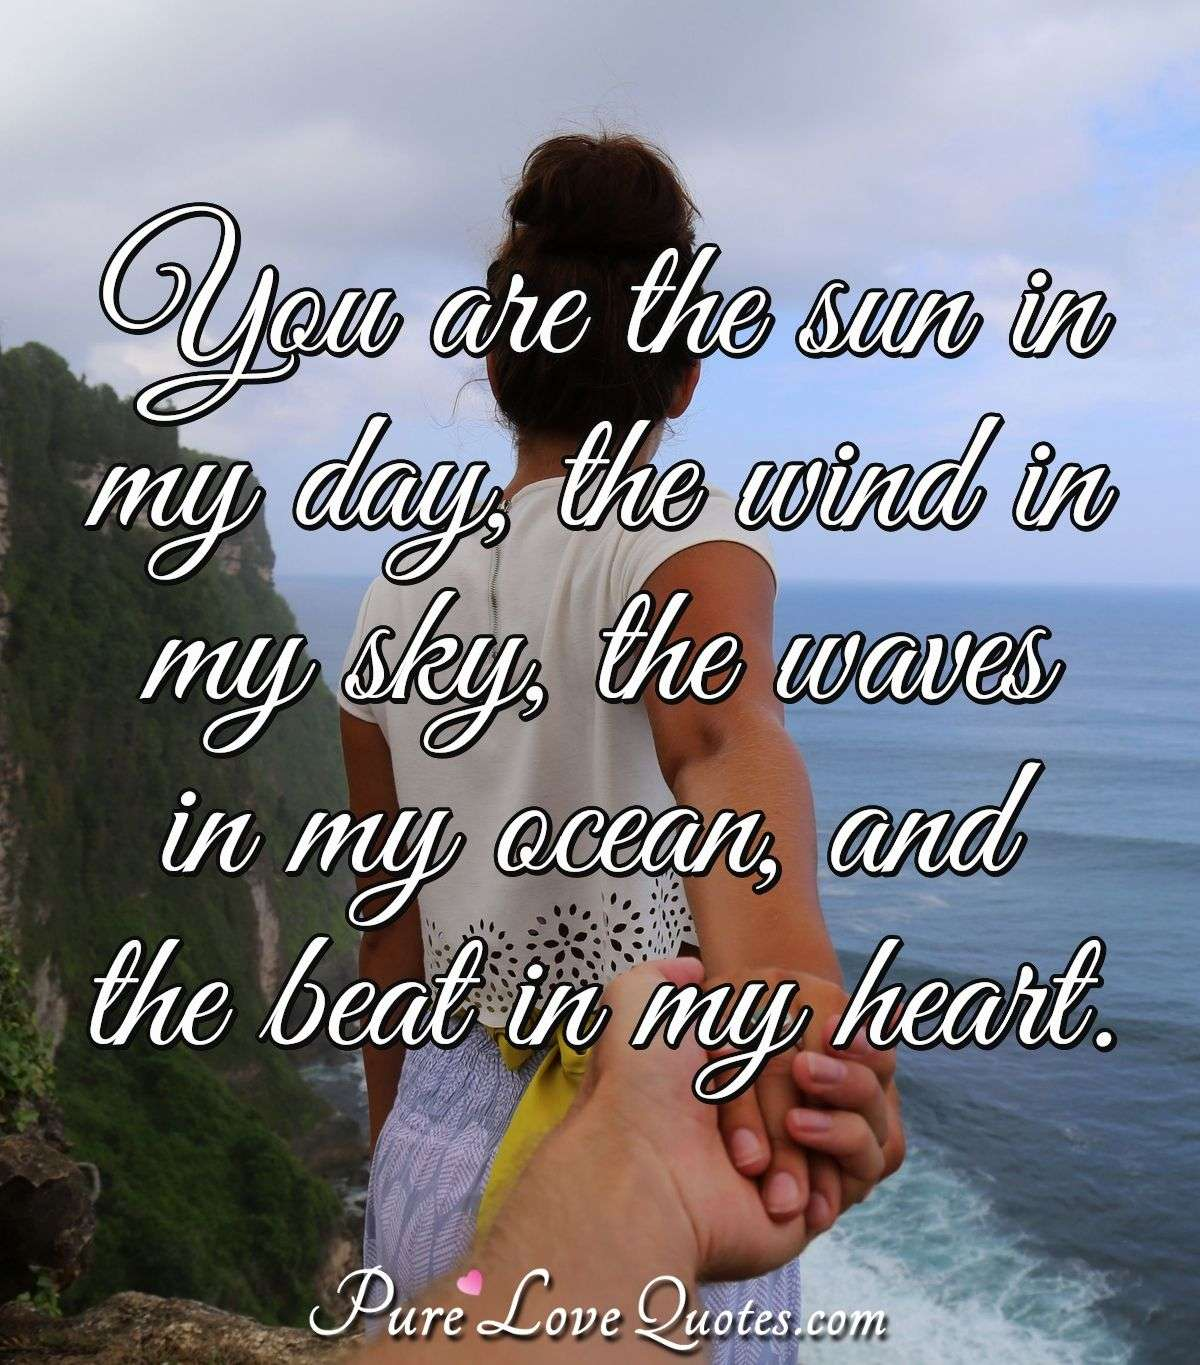 You are the sun in my day, the wind in my sky, the waves in my ocean, and the beat in my heart. - Anonymous